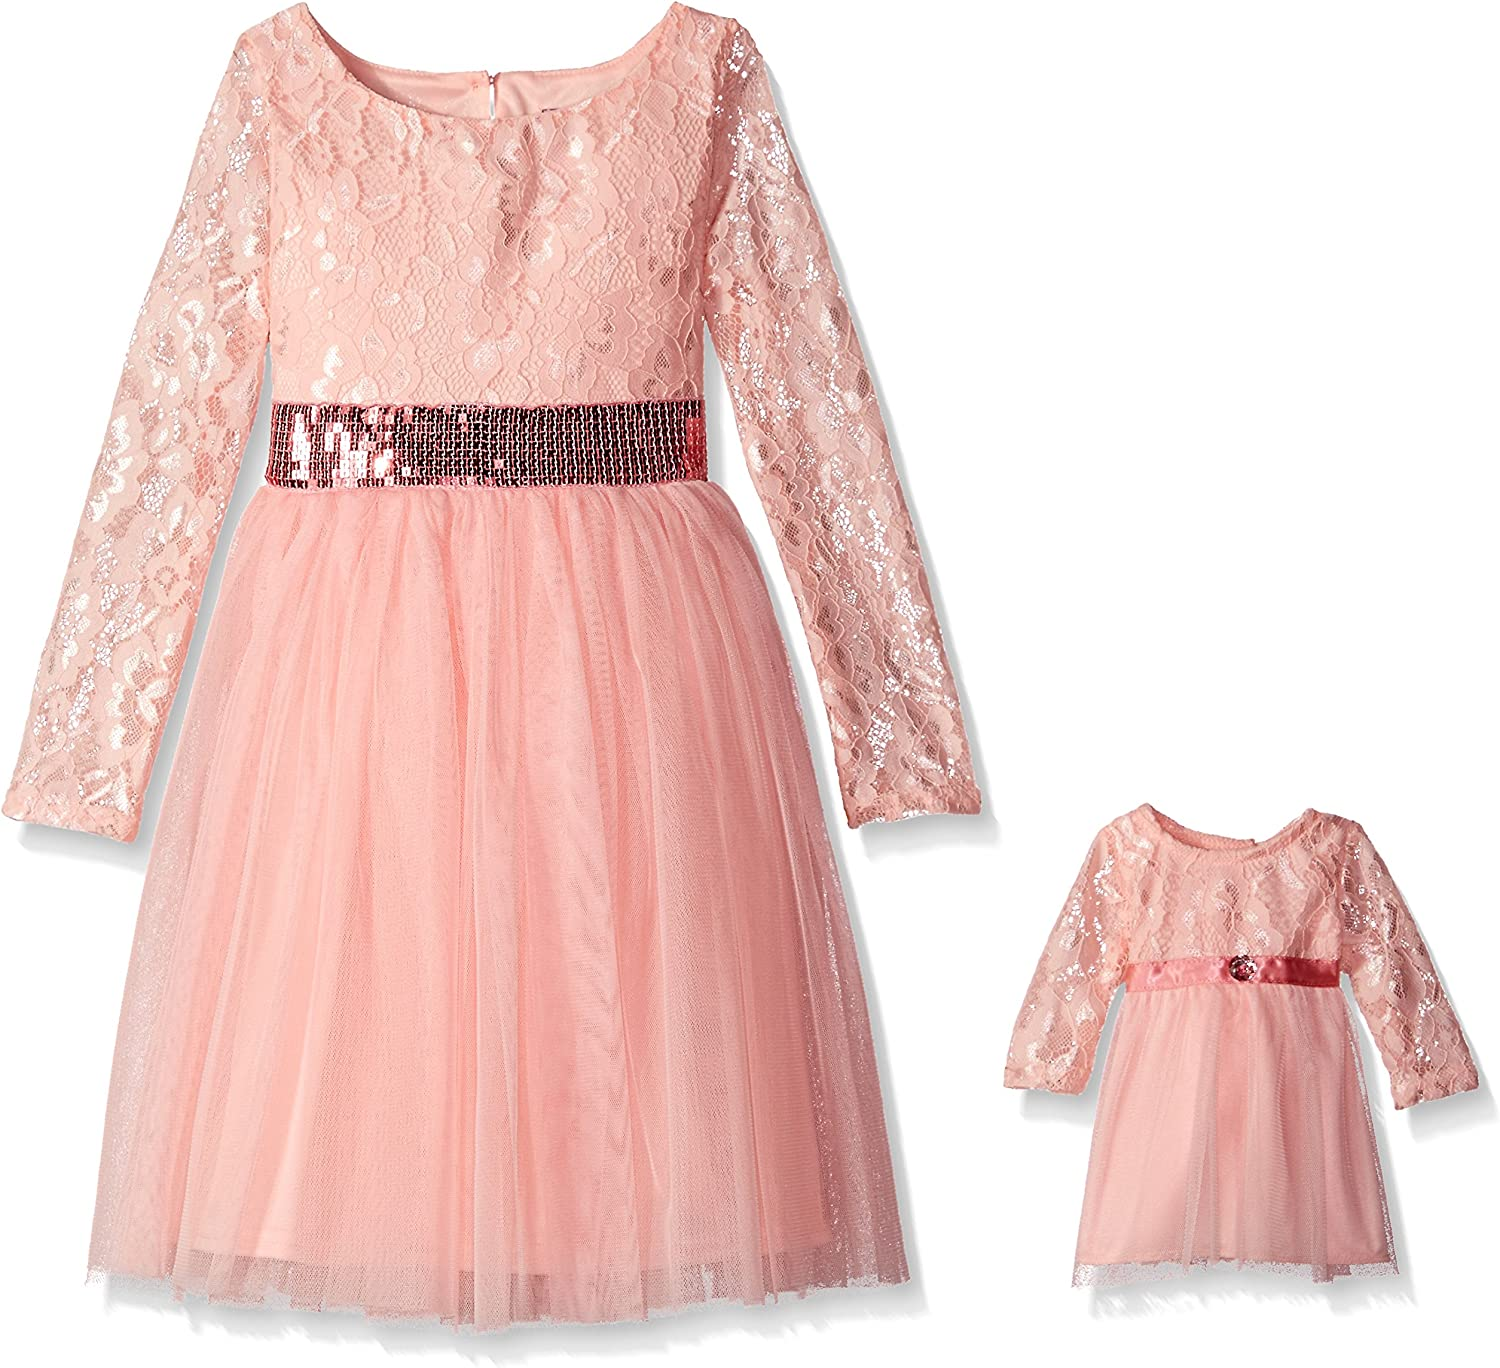 Dollie & Me Girls' Little Lace Bodice Dress with Tulle Skirt